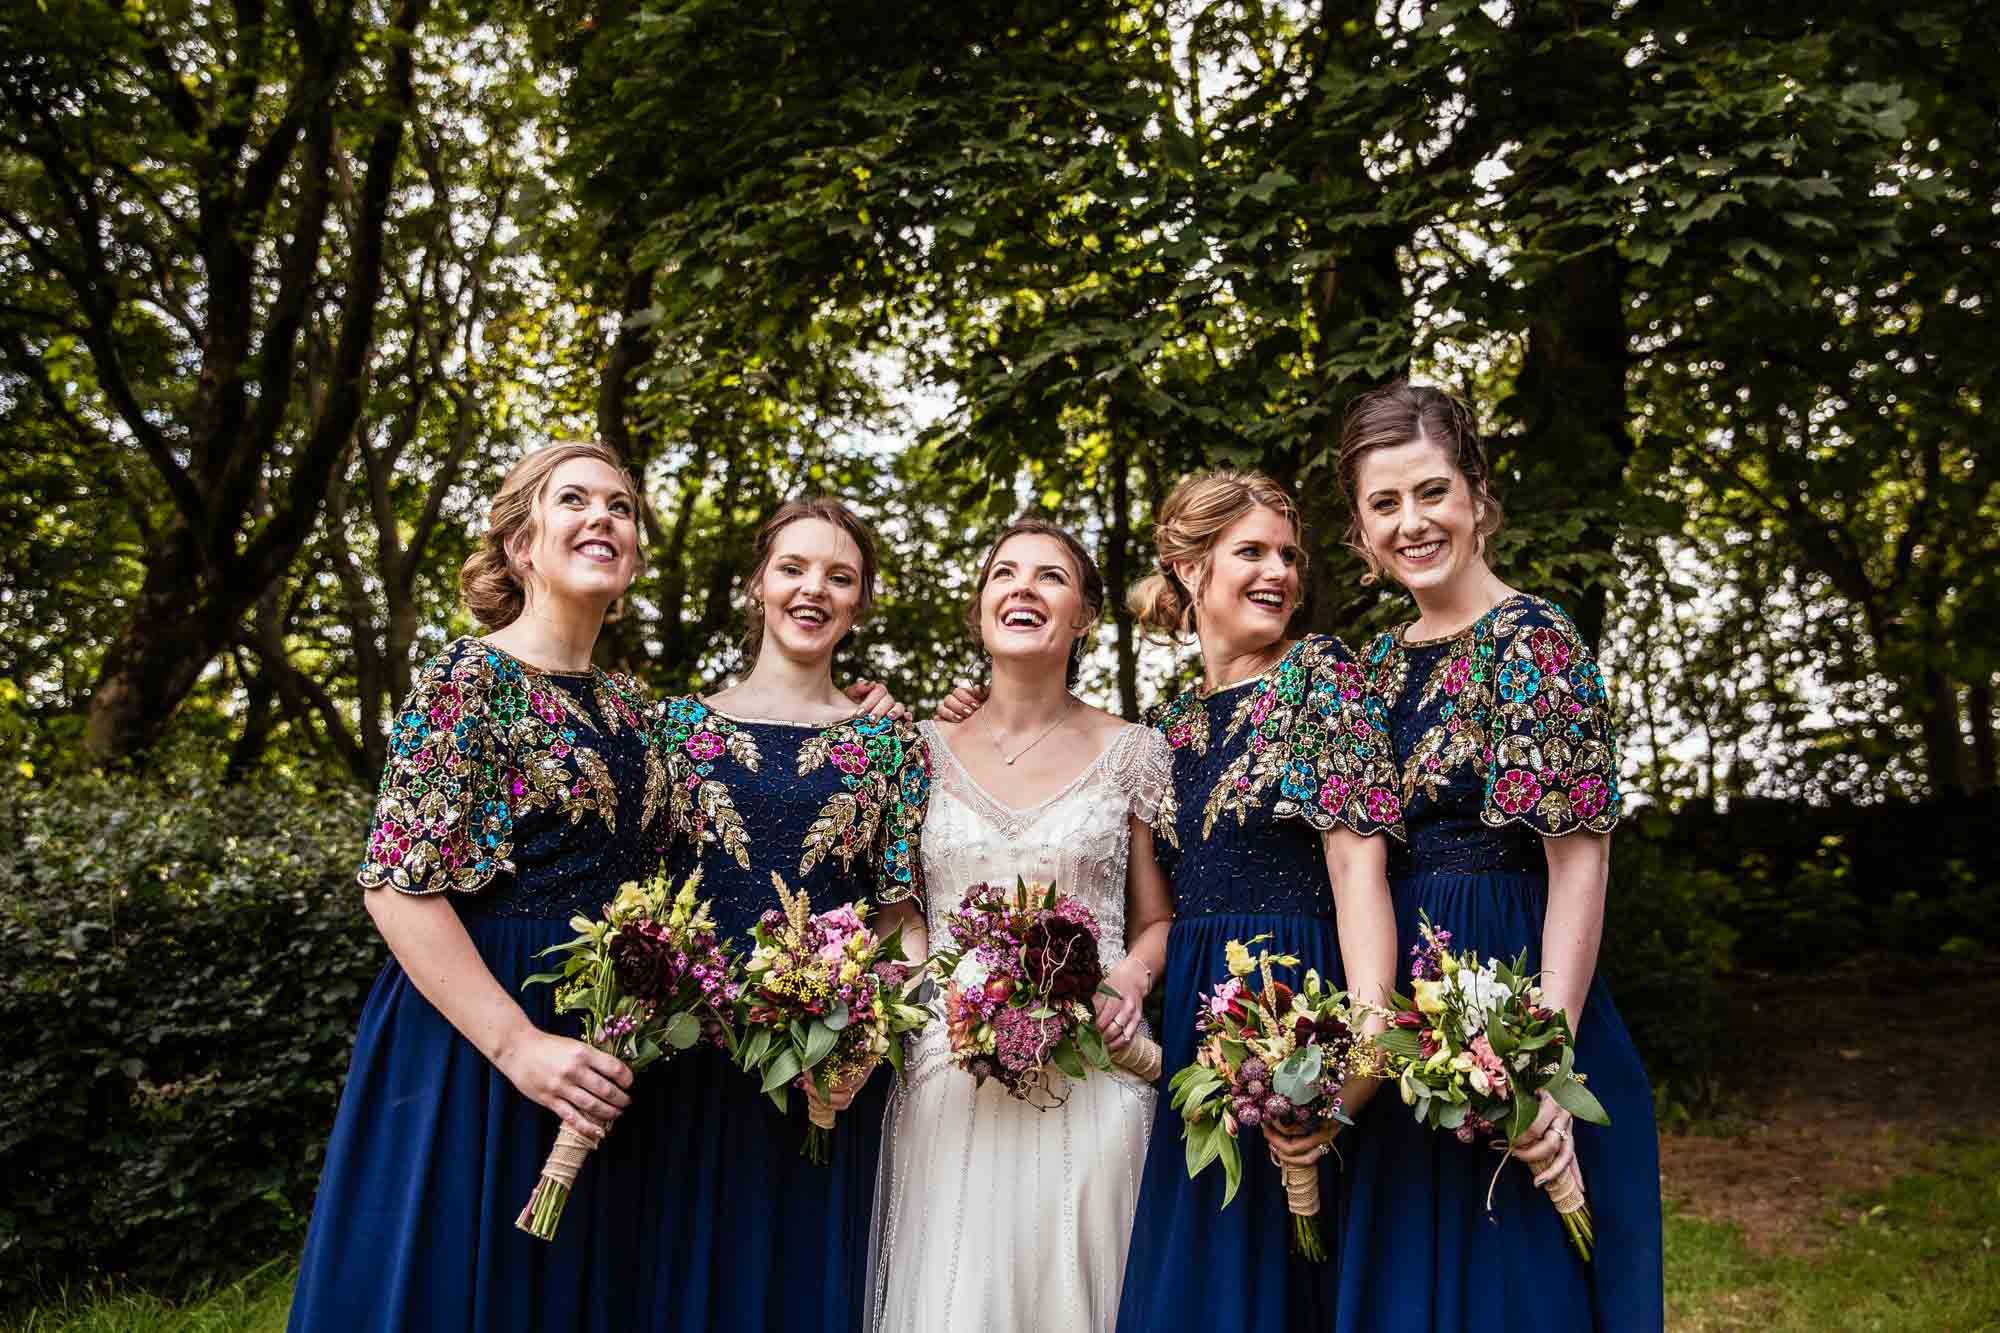 Creative Wedding Photography Hargate Hall Peak District